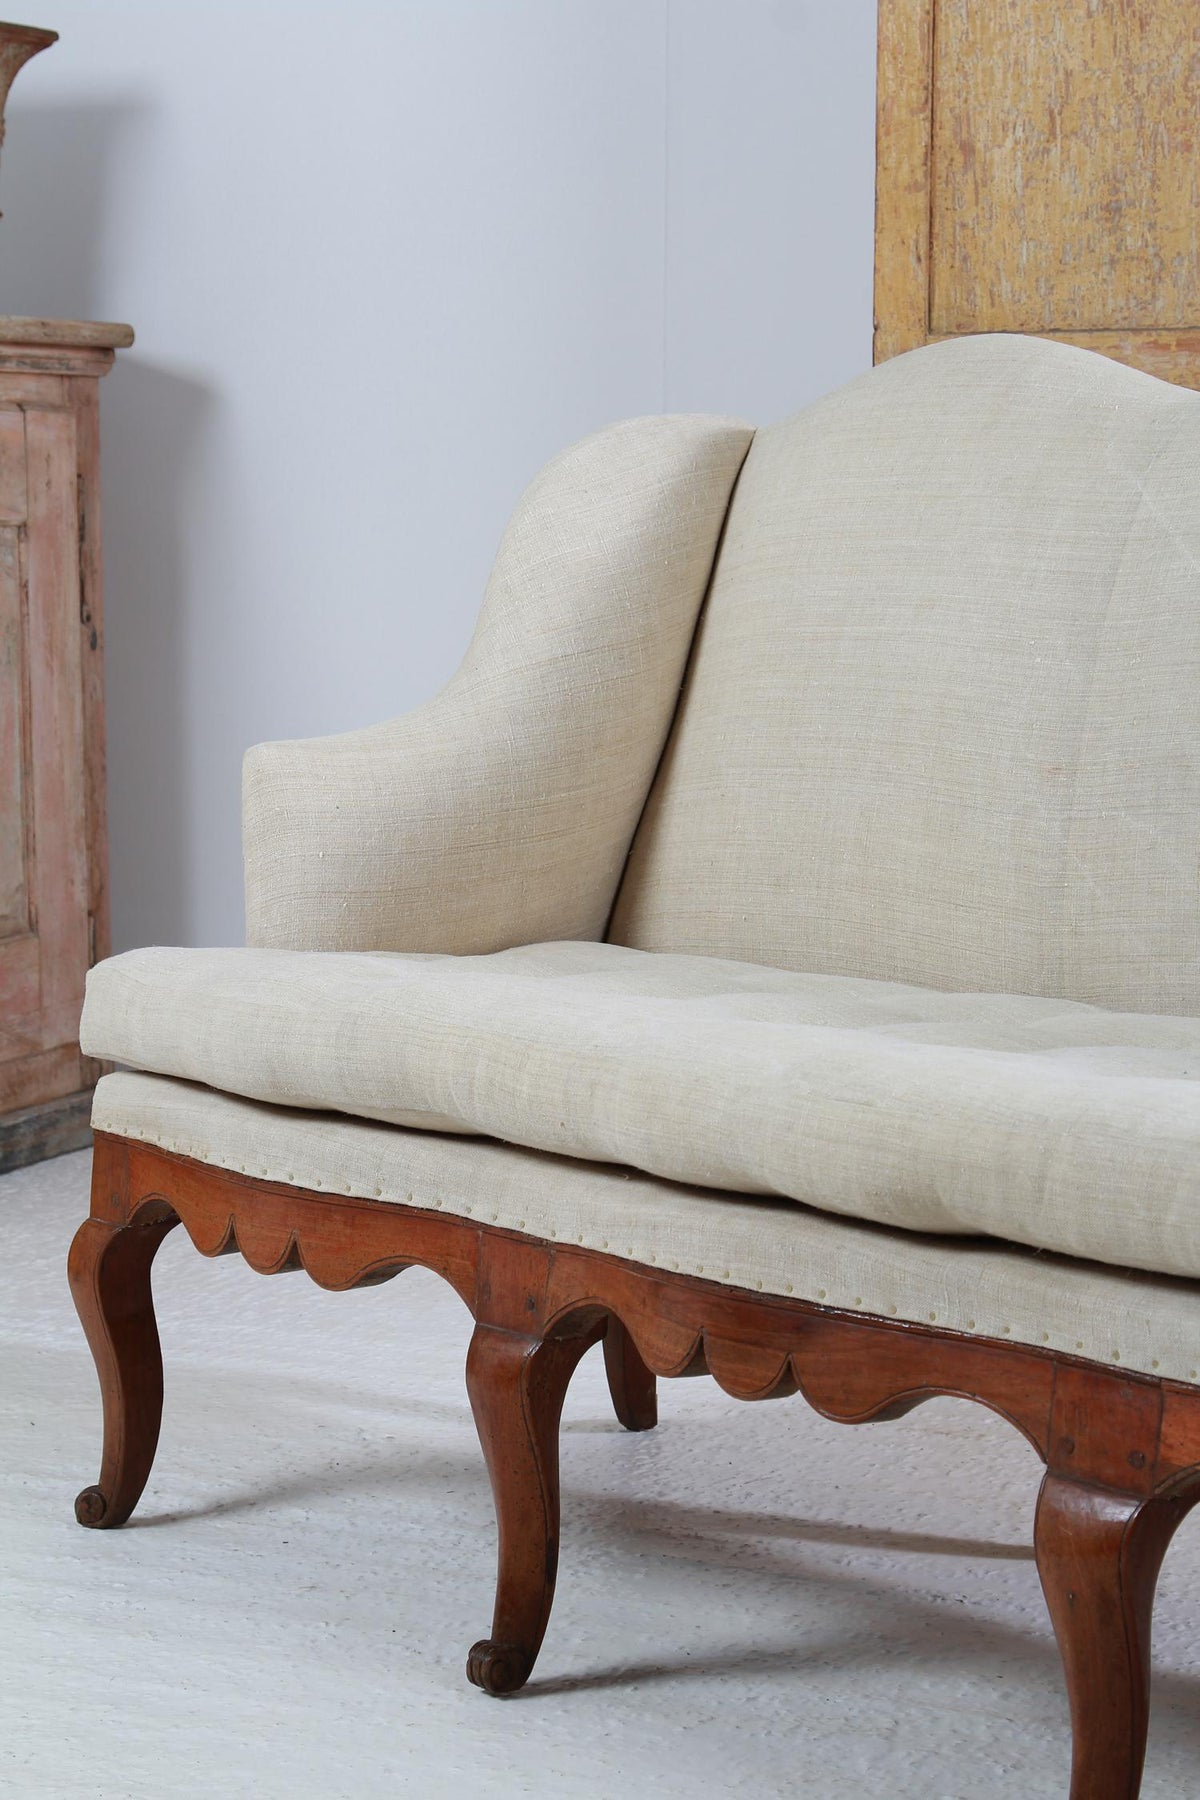 Exquisite Louis XIV Period French 18thC  Walnut Sofa